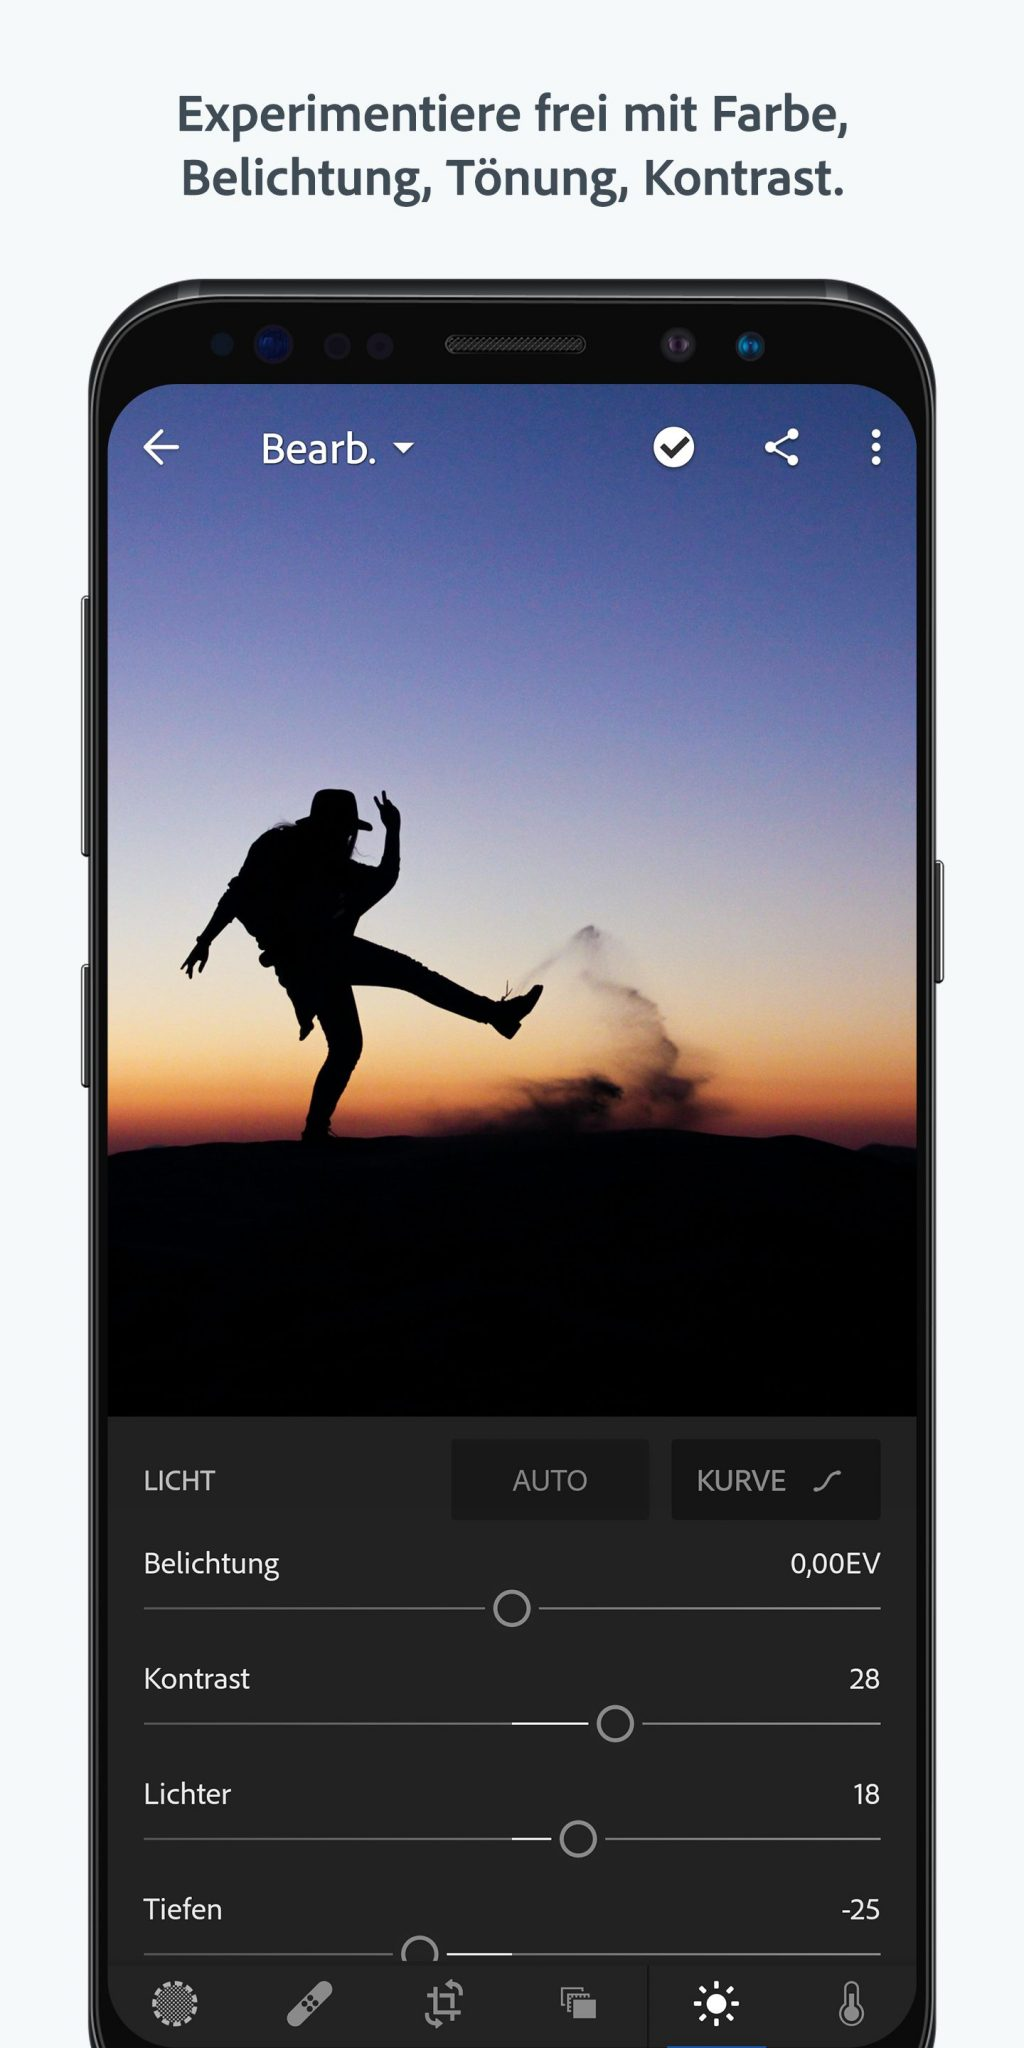 Adobe Photoshop Lightroom CC v4.2 Full APK